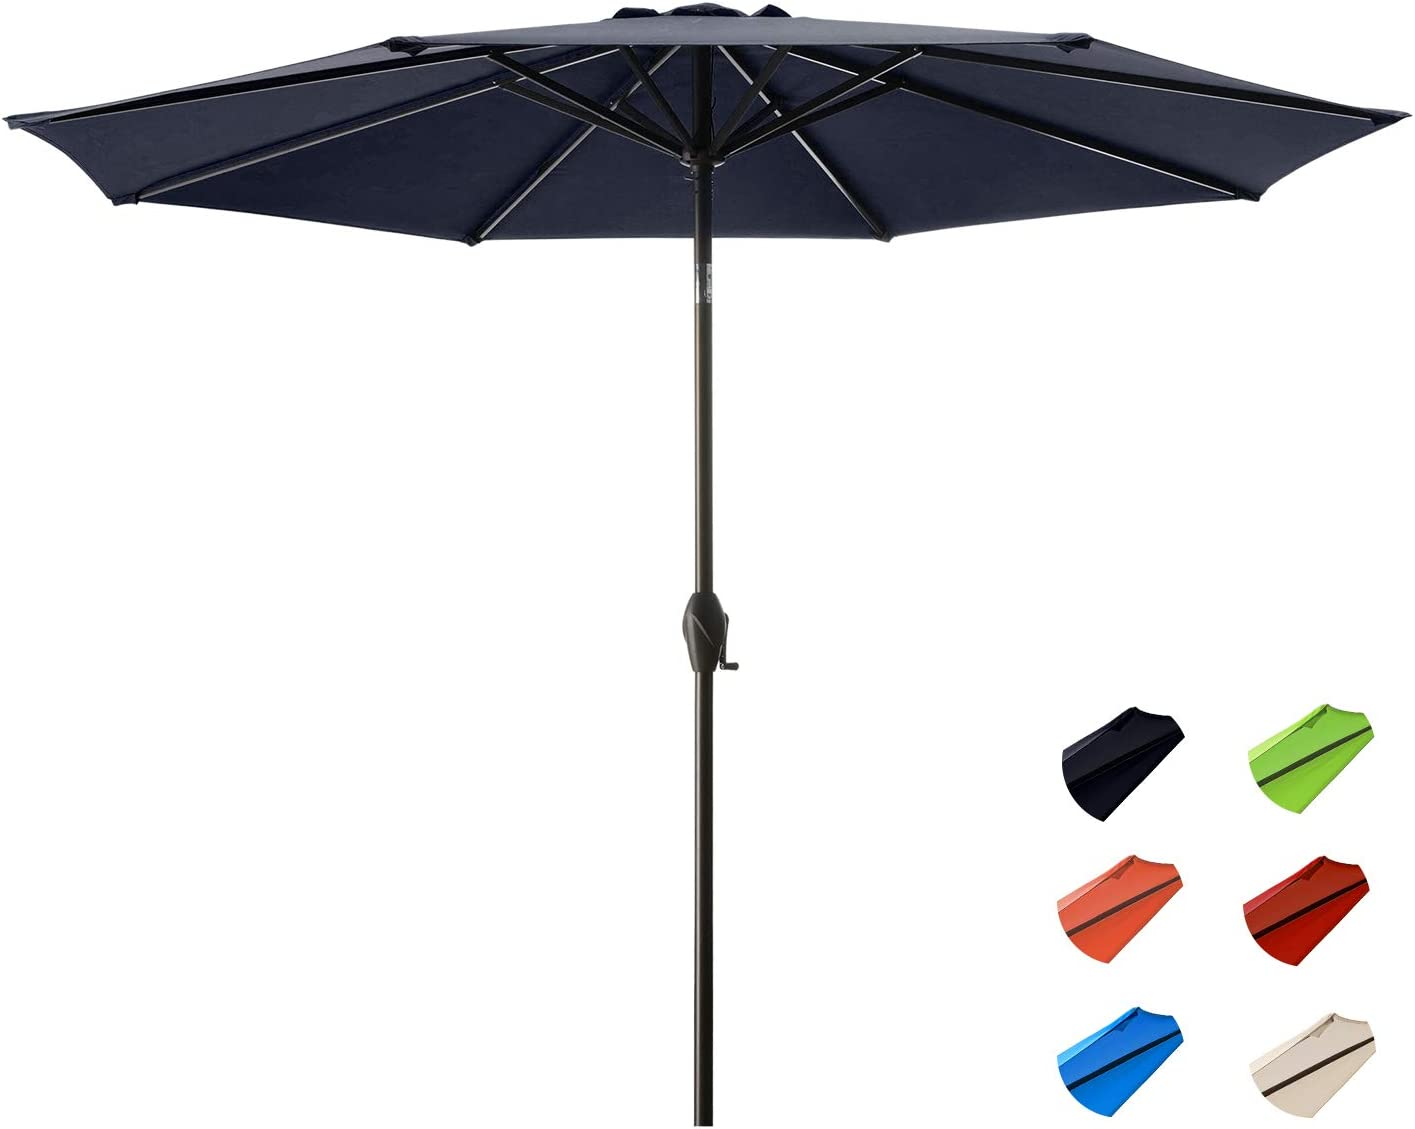 KITADIN Patio Umbrella - Outdoor Market Table Umbrellas with Push Button Tilt and Crank Lift,8 Sturdy Square Ribs…